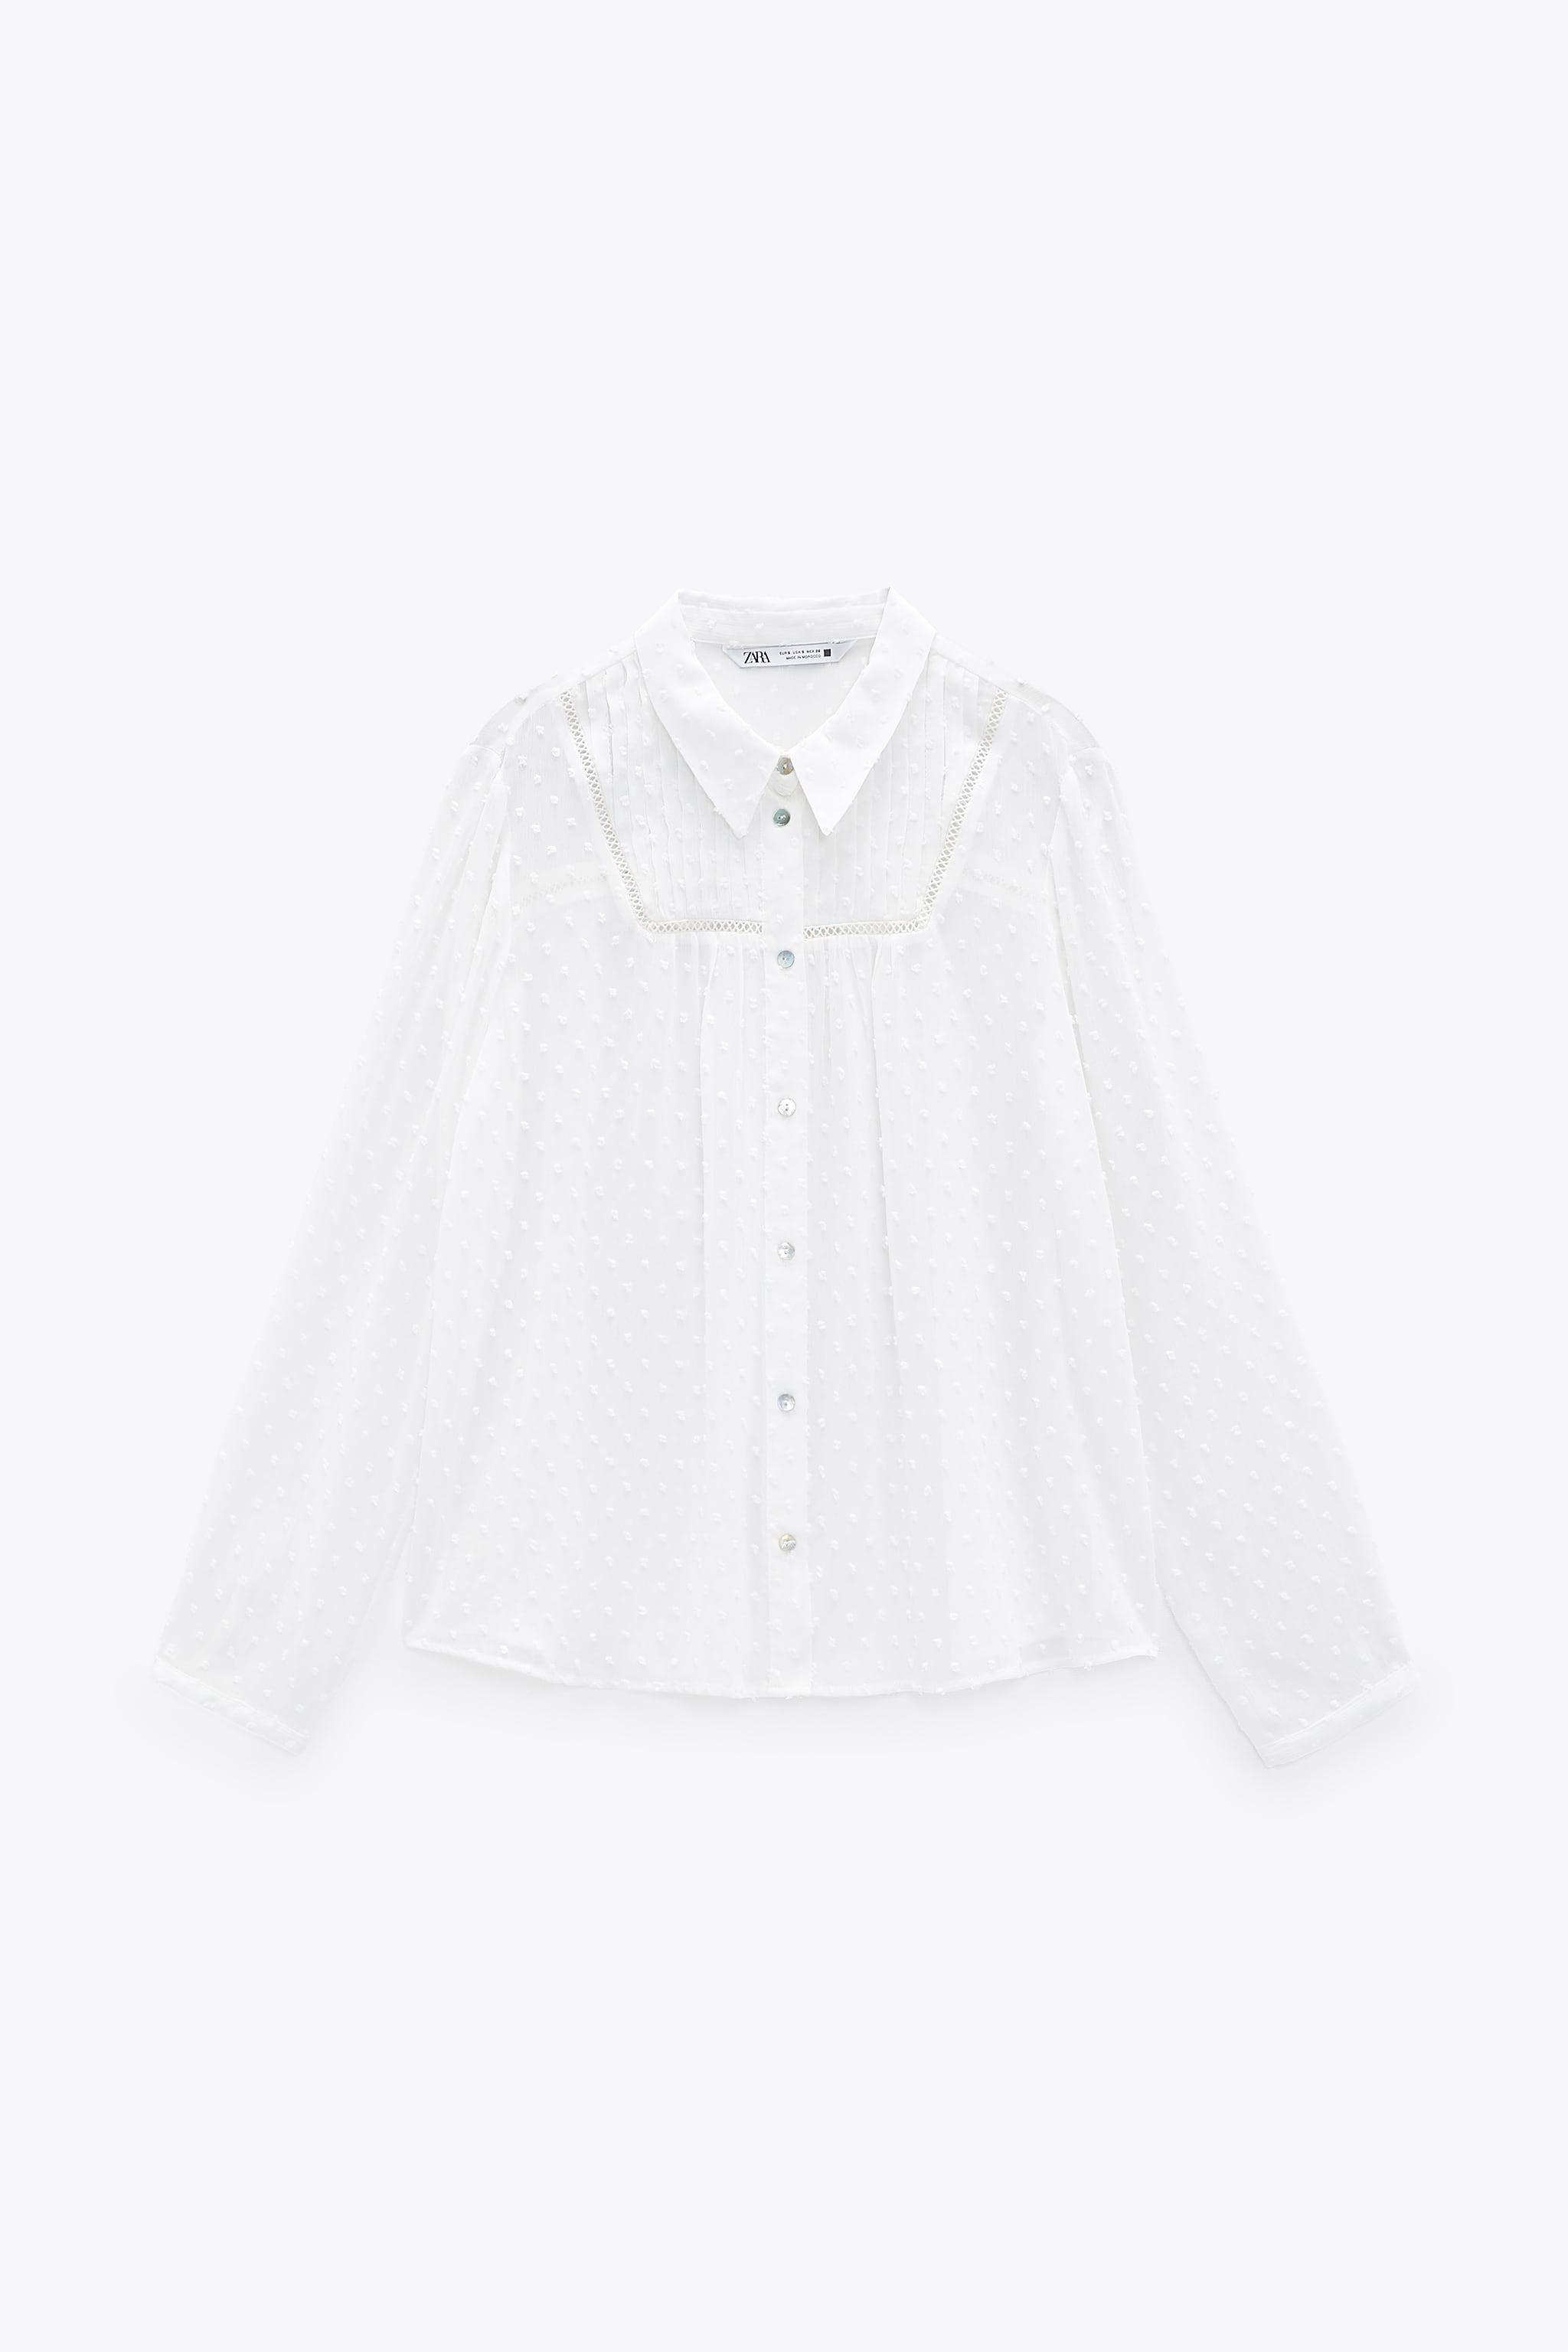 DOTTED MESH LACE INSERT SHIRT 4